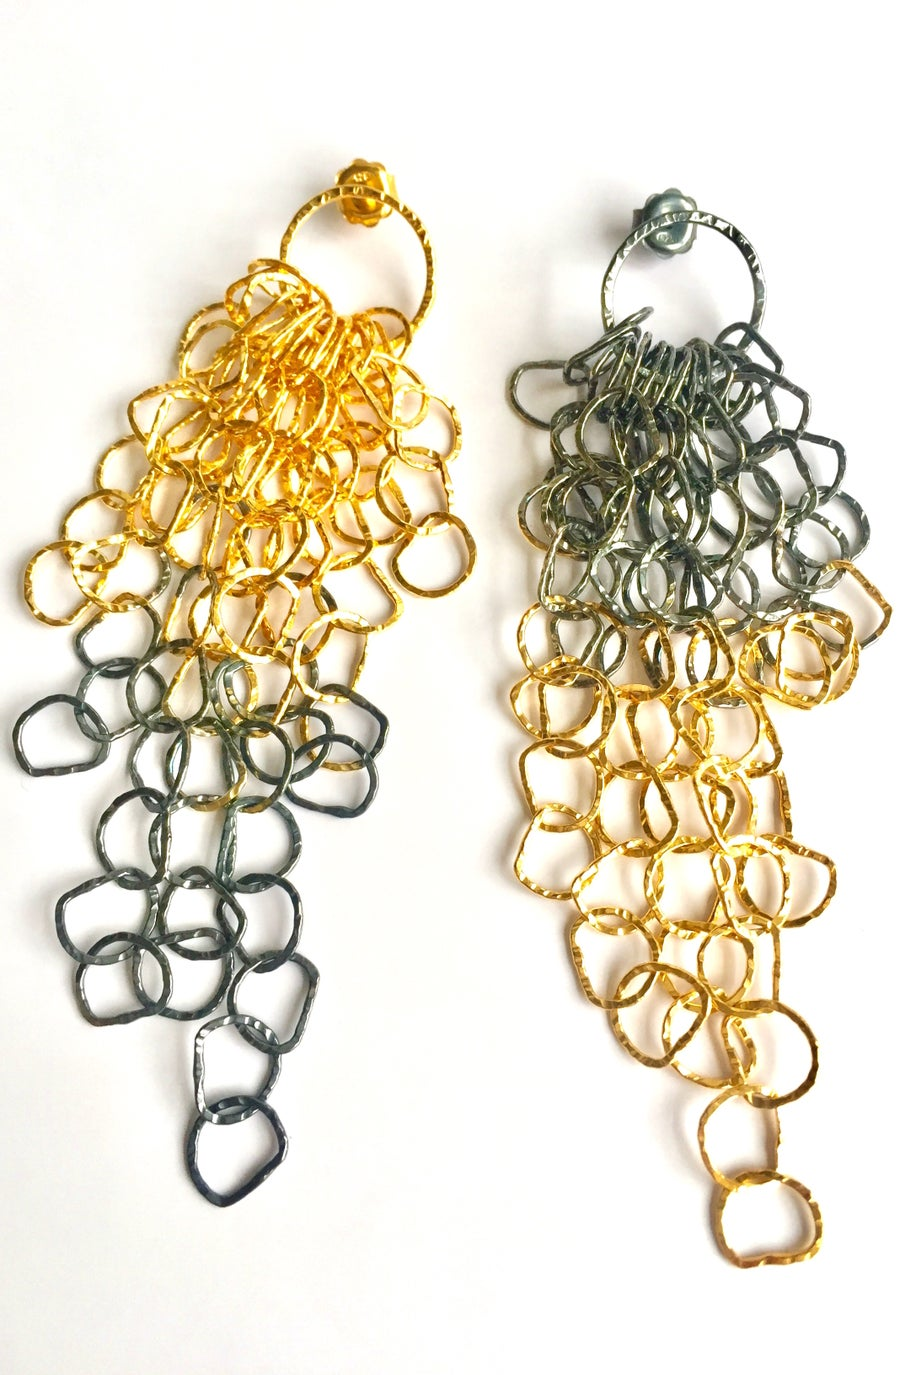 Image of Afiok earrings - One of a Kind